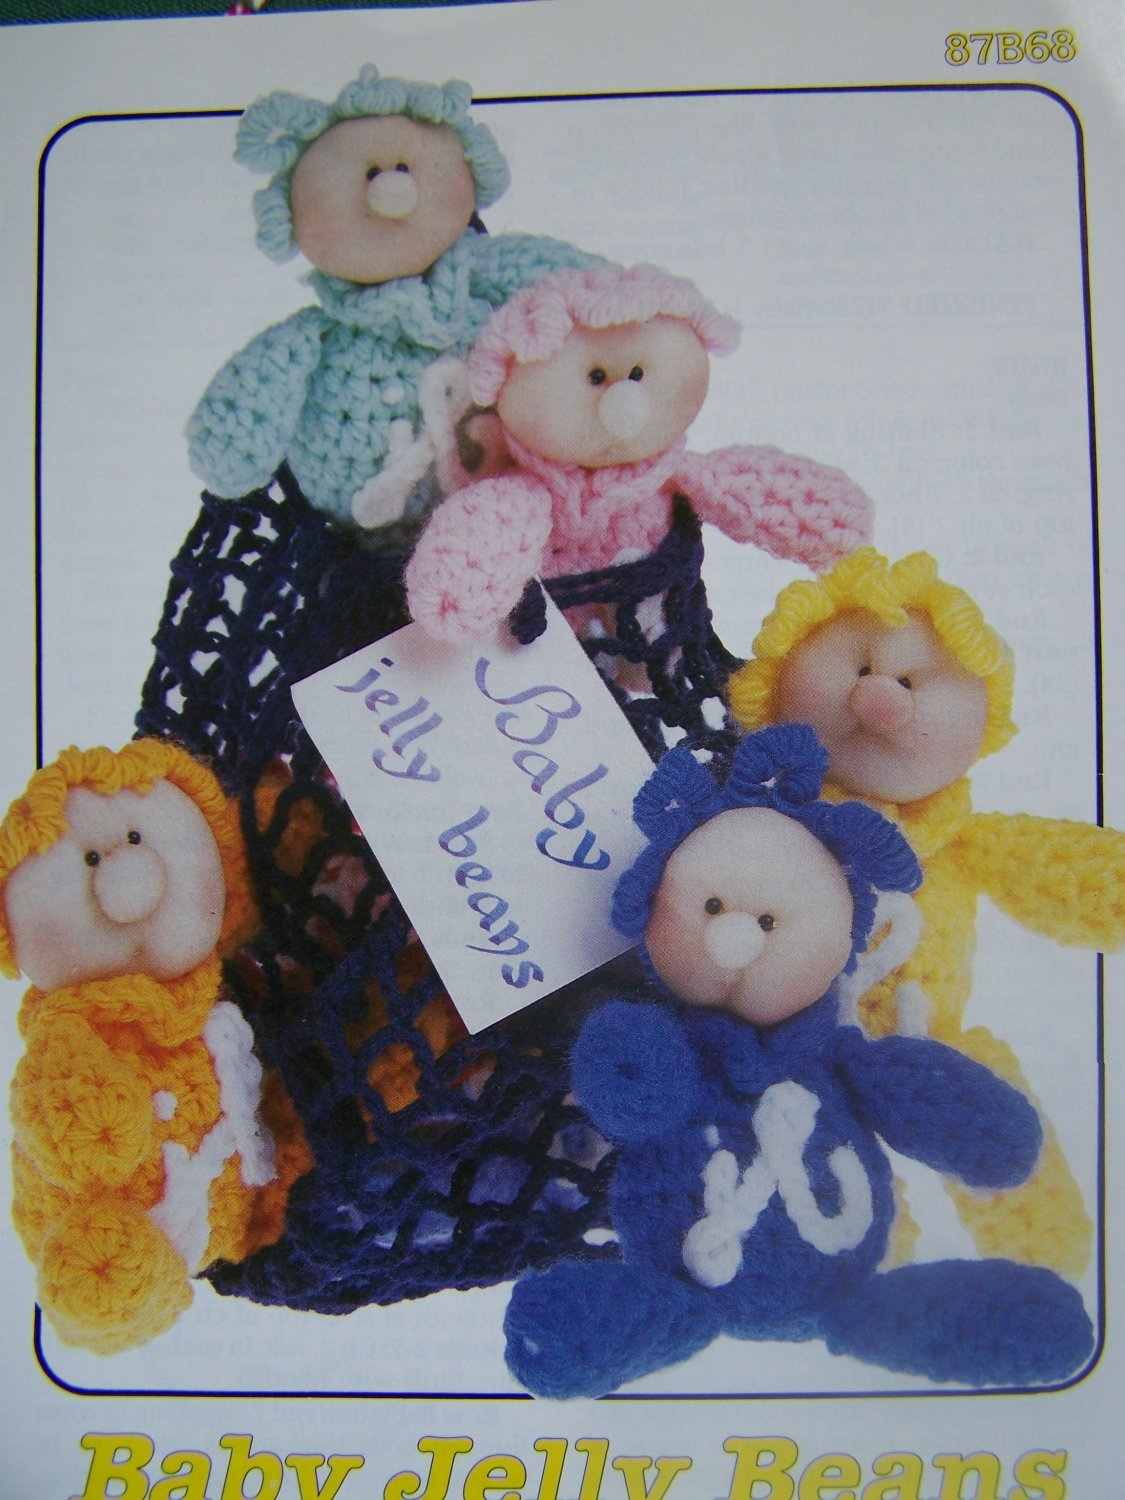 USA Free S&H Vintage Annie's Attic Crochet Pattern Baby Jelly Beans In A Bag Beanie Toys